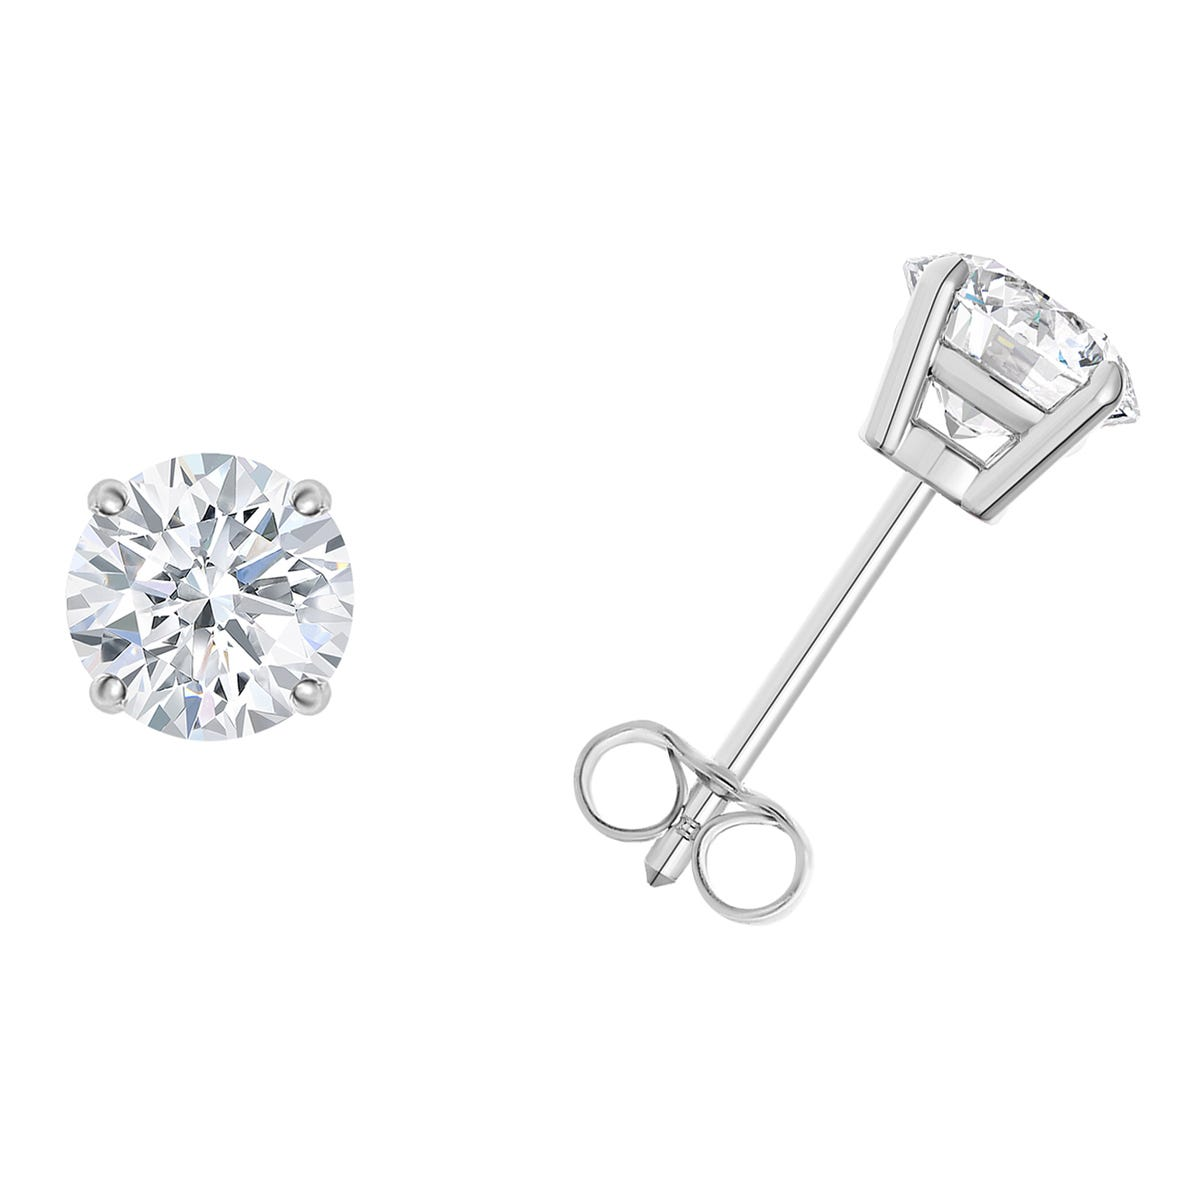 1/3 CTTW Round Diamond Solitaire Stud Earrings in 14K White Gold 4-Prong IGI Certified I2